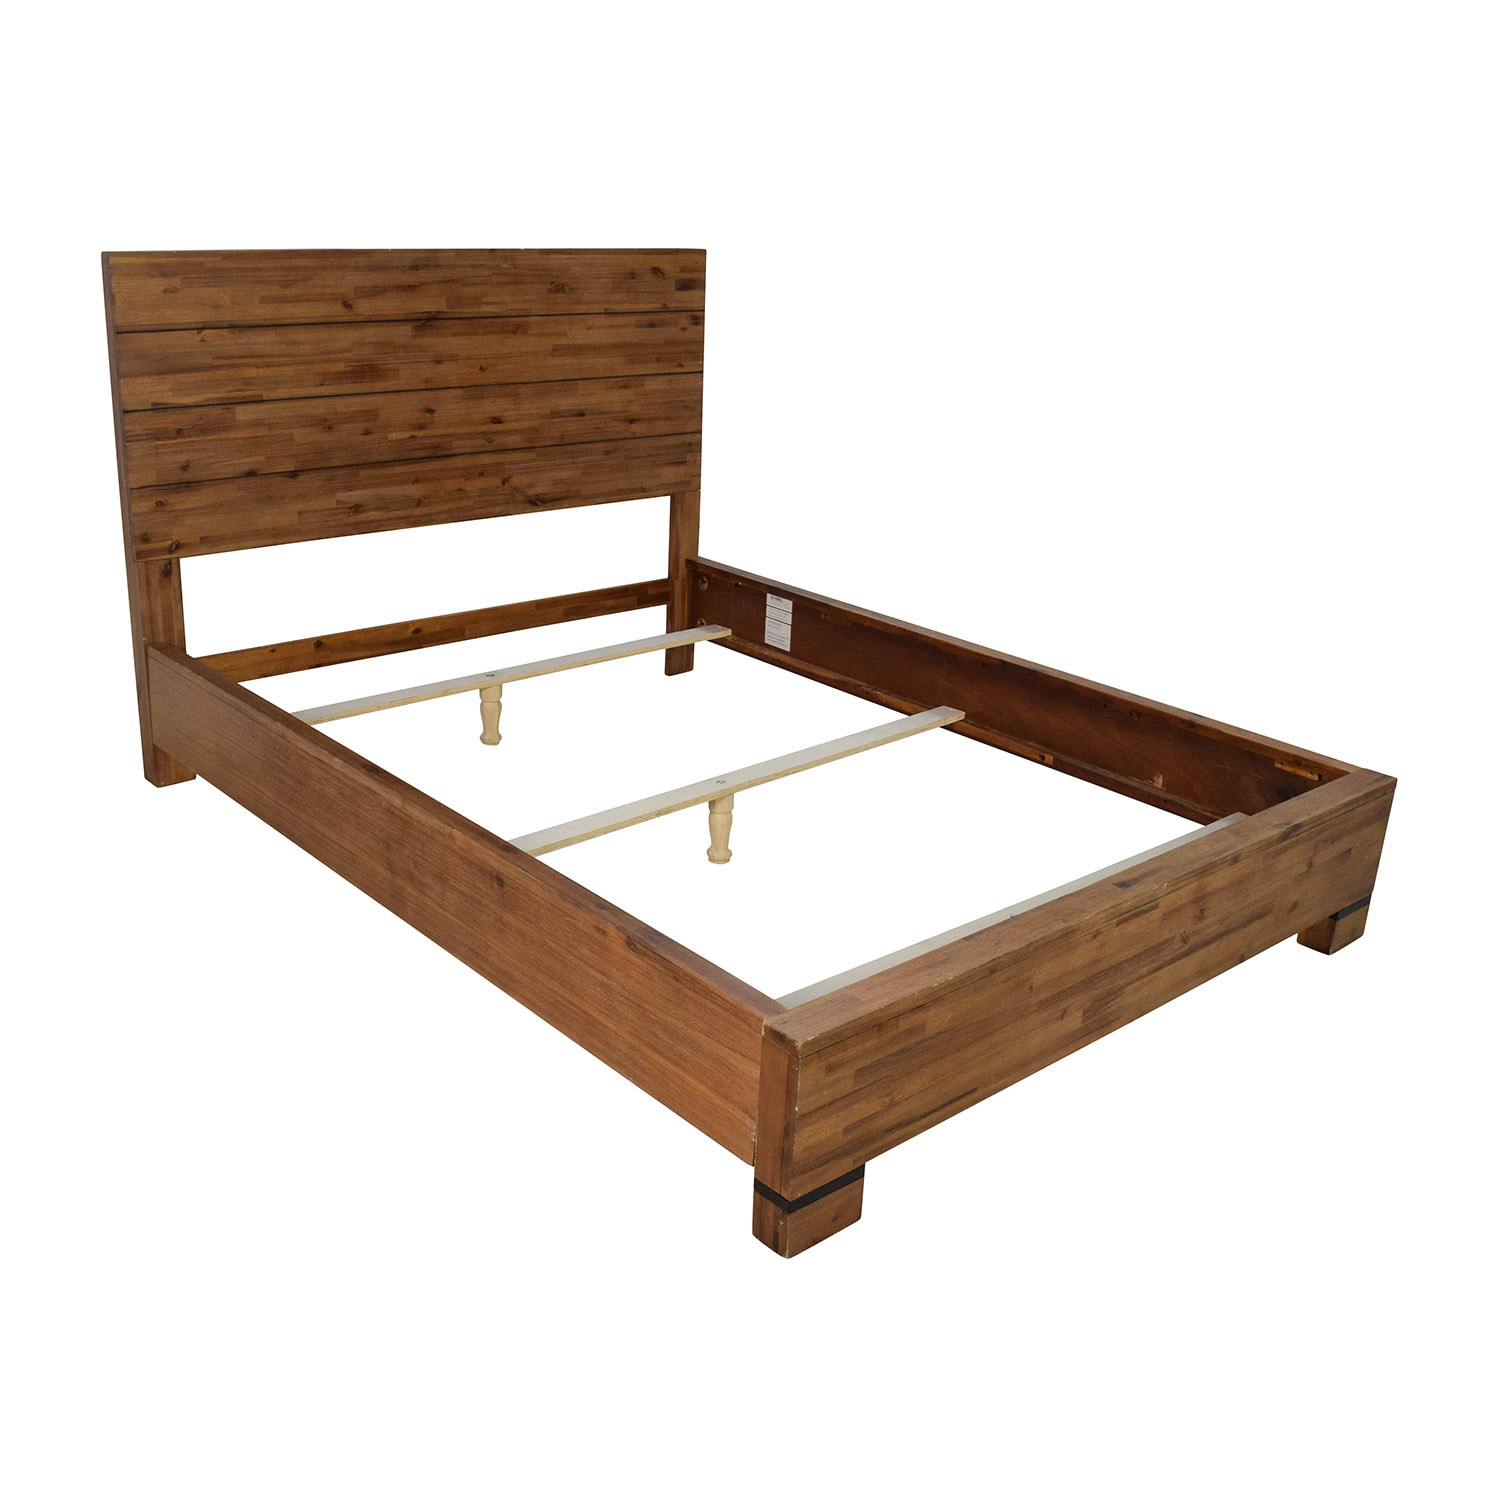 Macys Sell: Macy's Macy's Champagne Queen Bed Frame / Beds